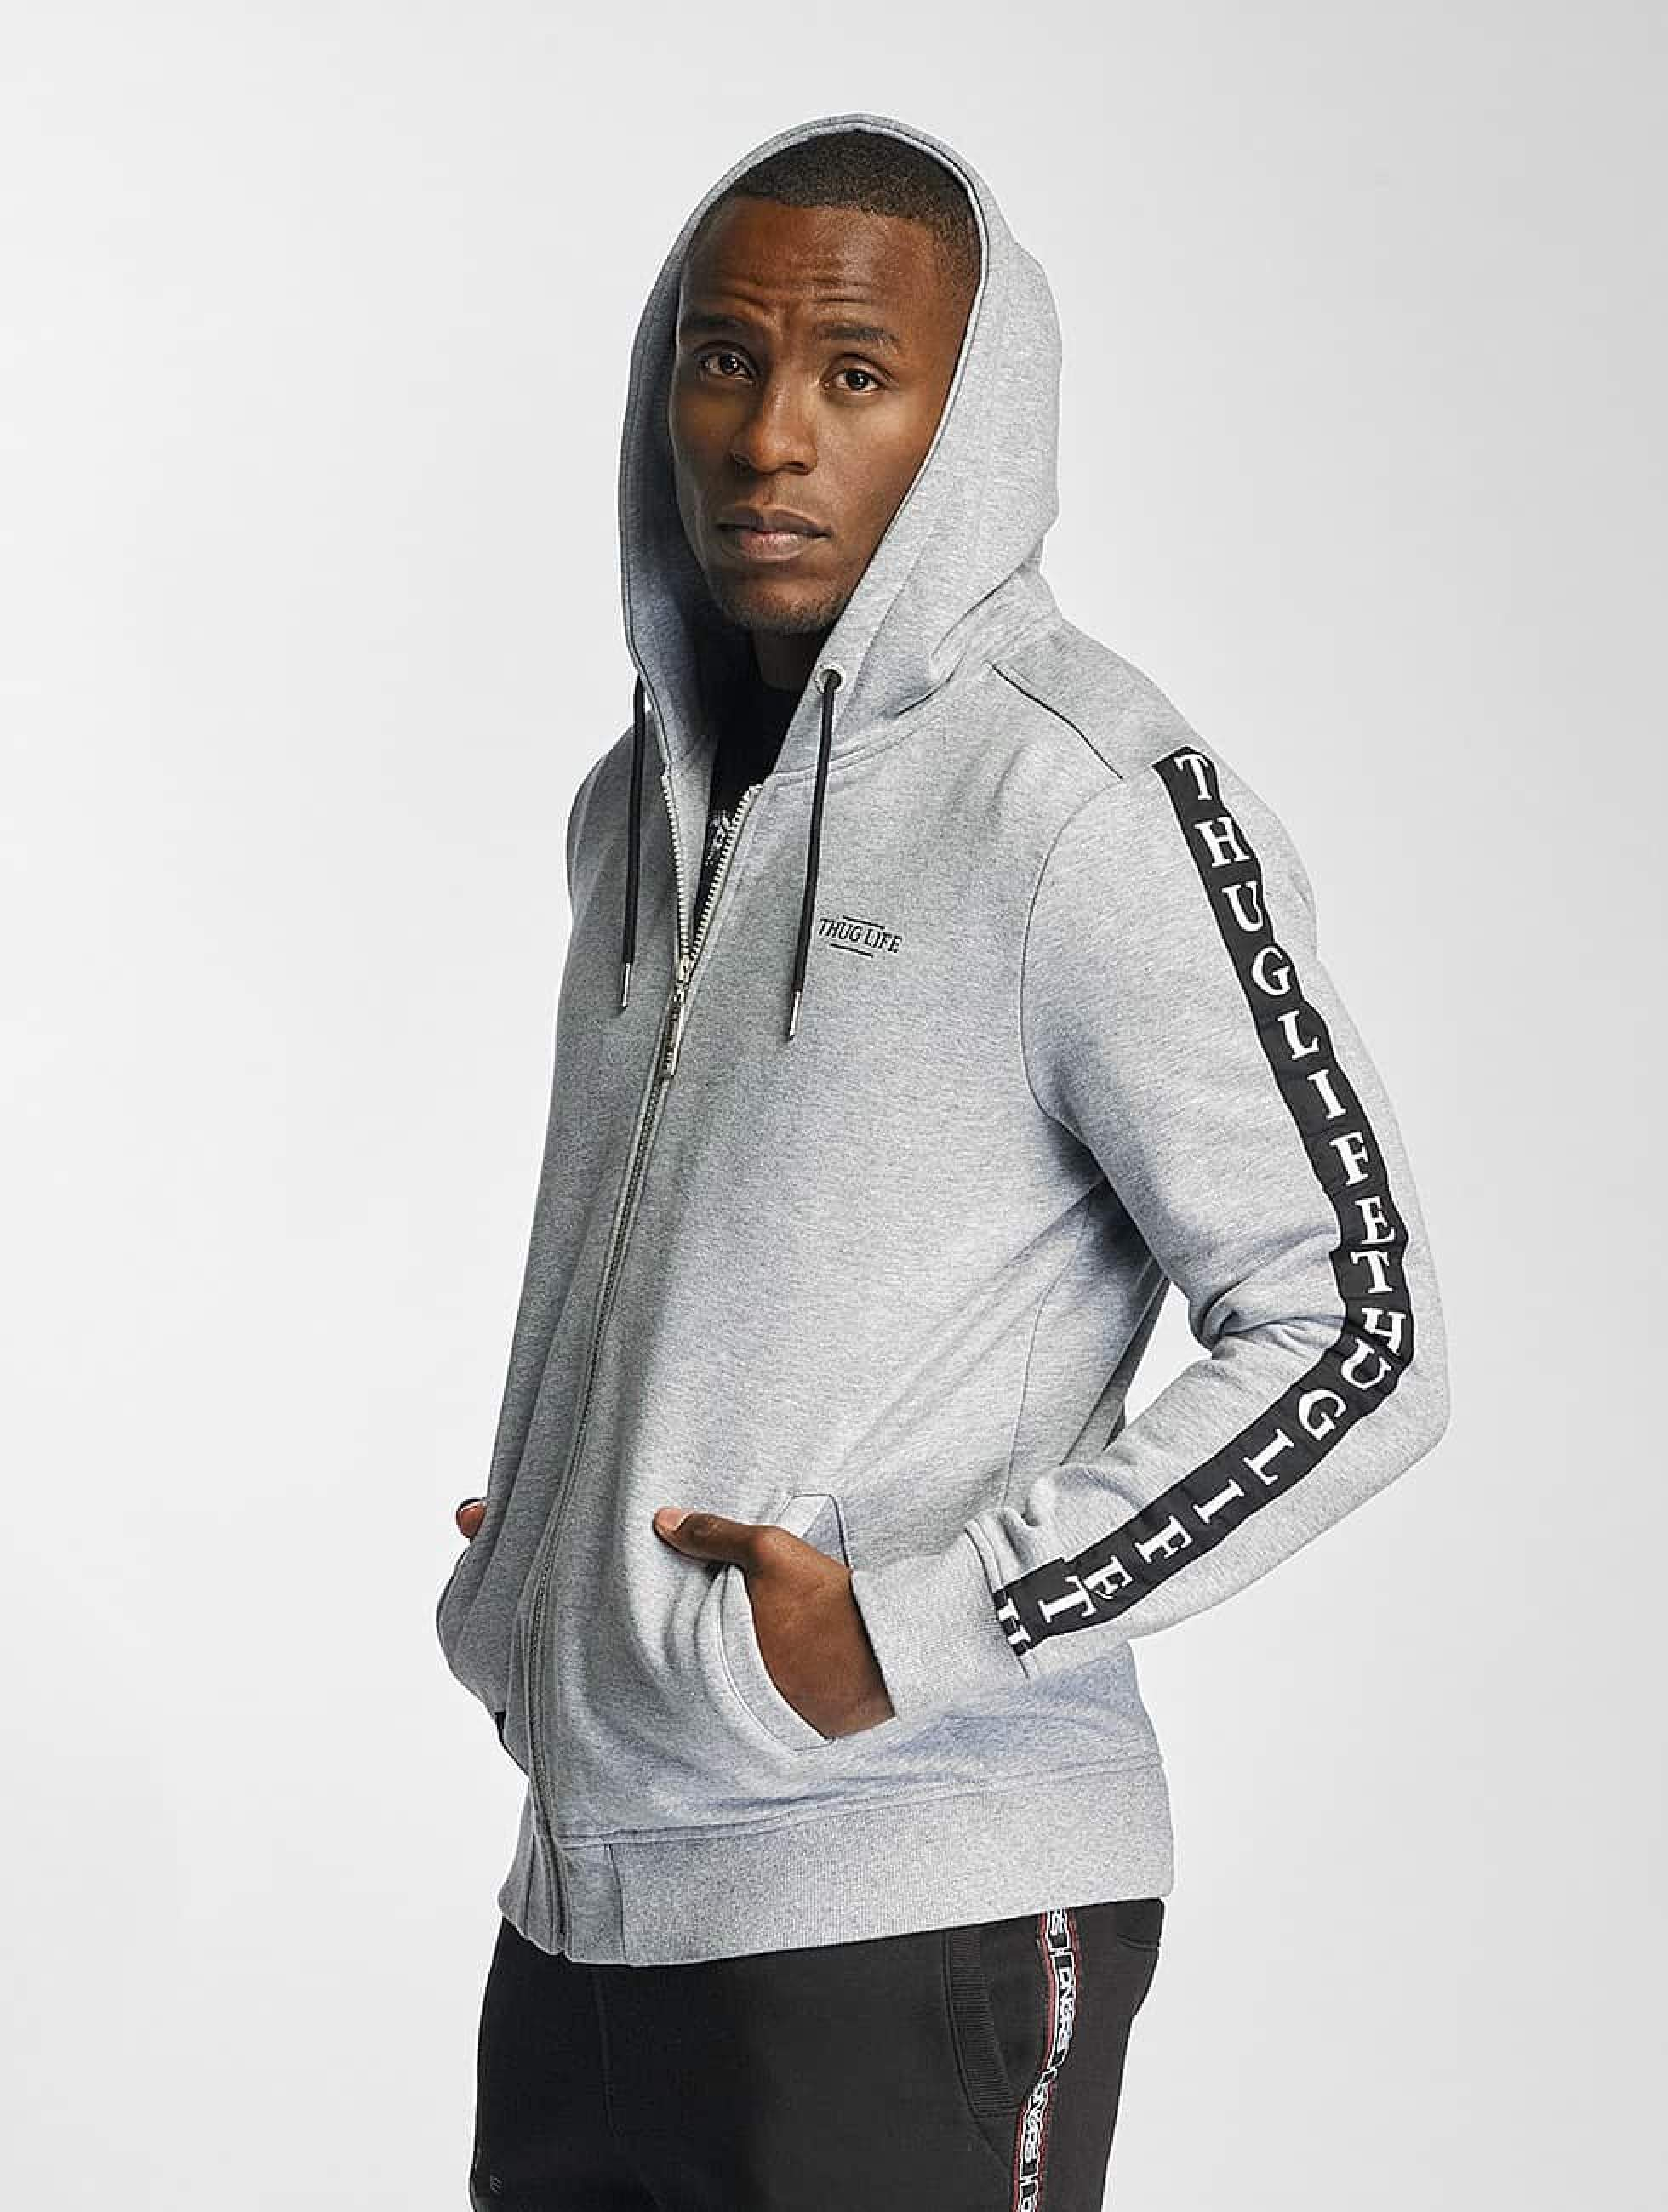 Thug Life / Zip Hoodie Wired Life in grey XL